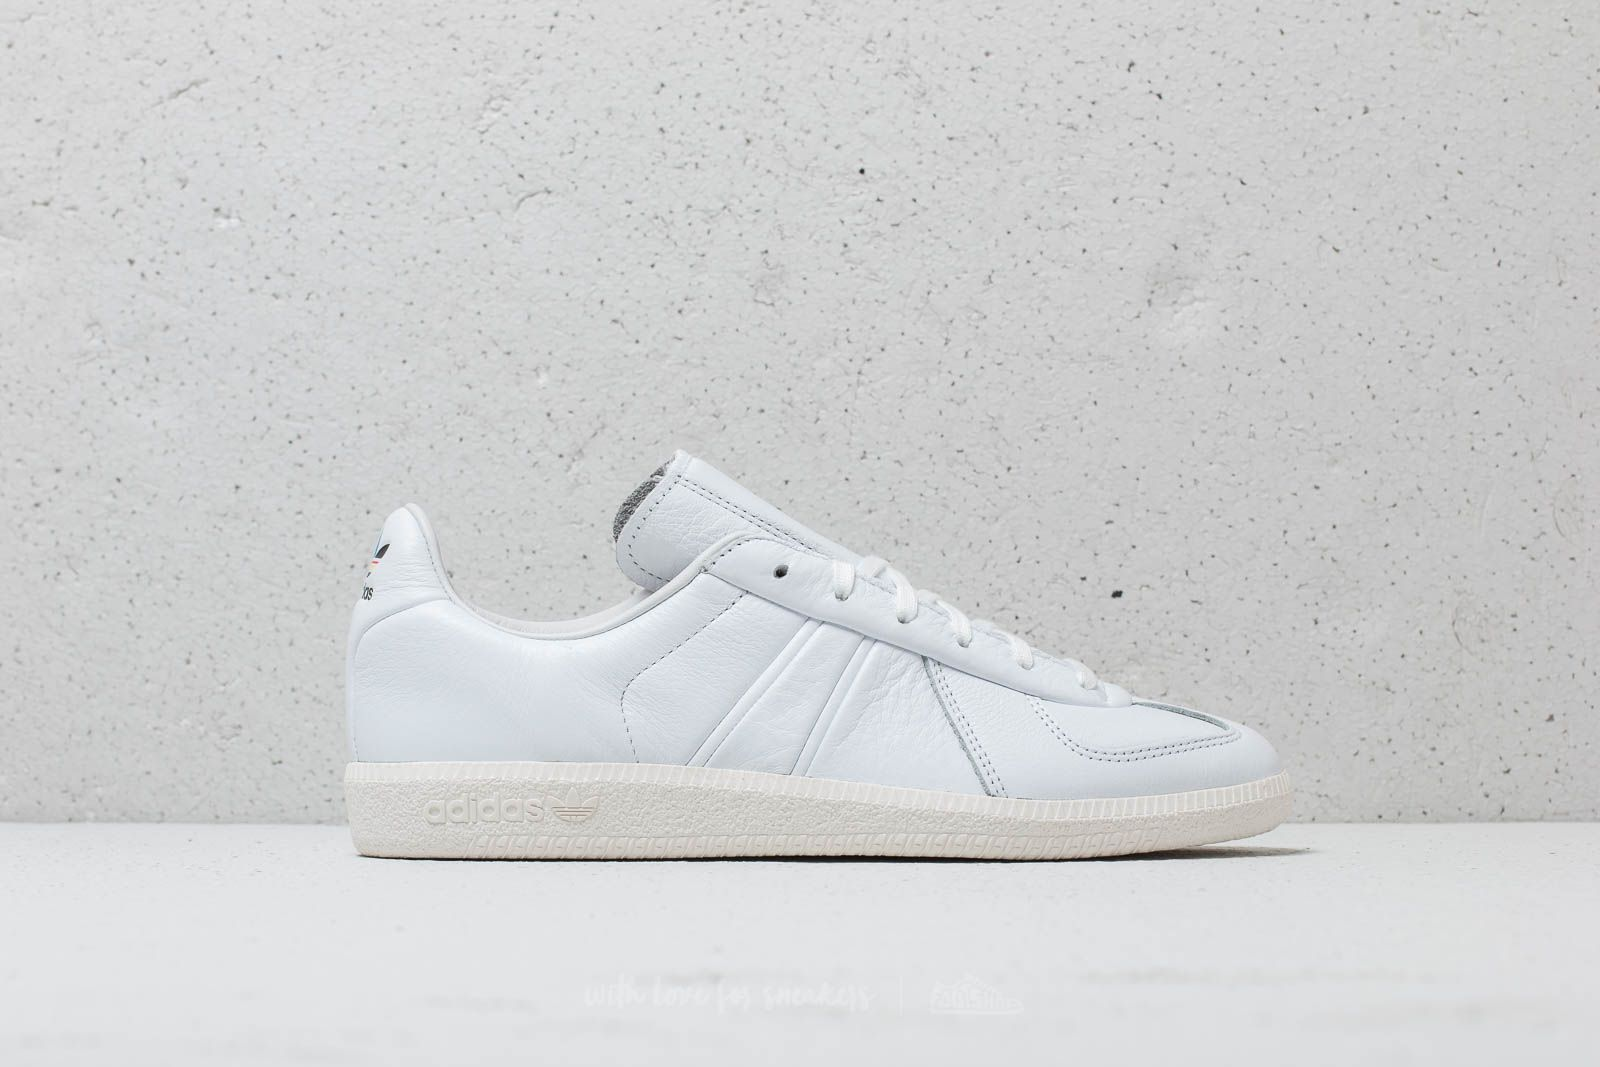 check out f3a4f 80d9b adidas Statement x Oyster Holdings BW Army Cloud White  Off White  Core  Black at